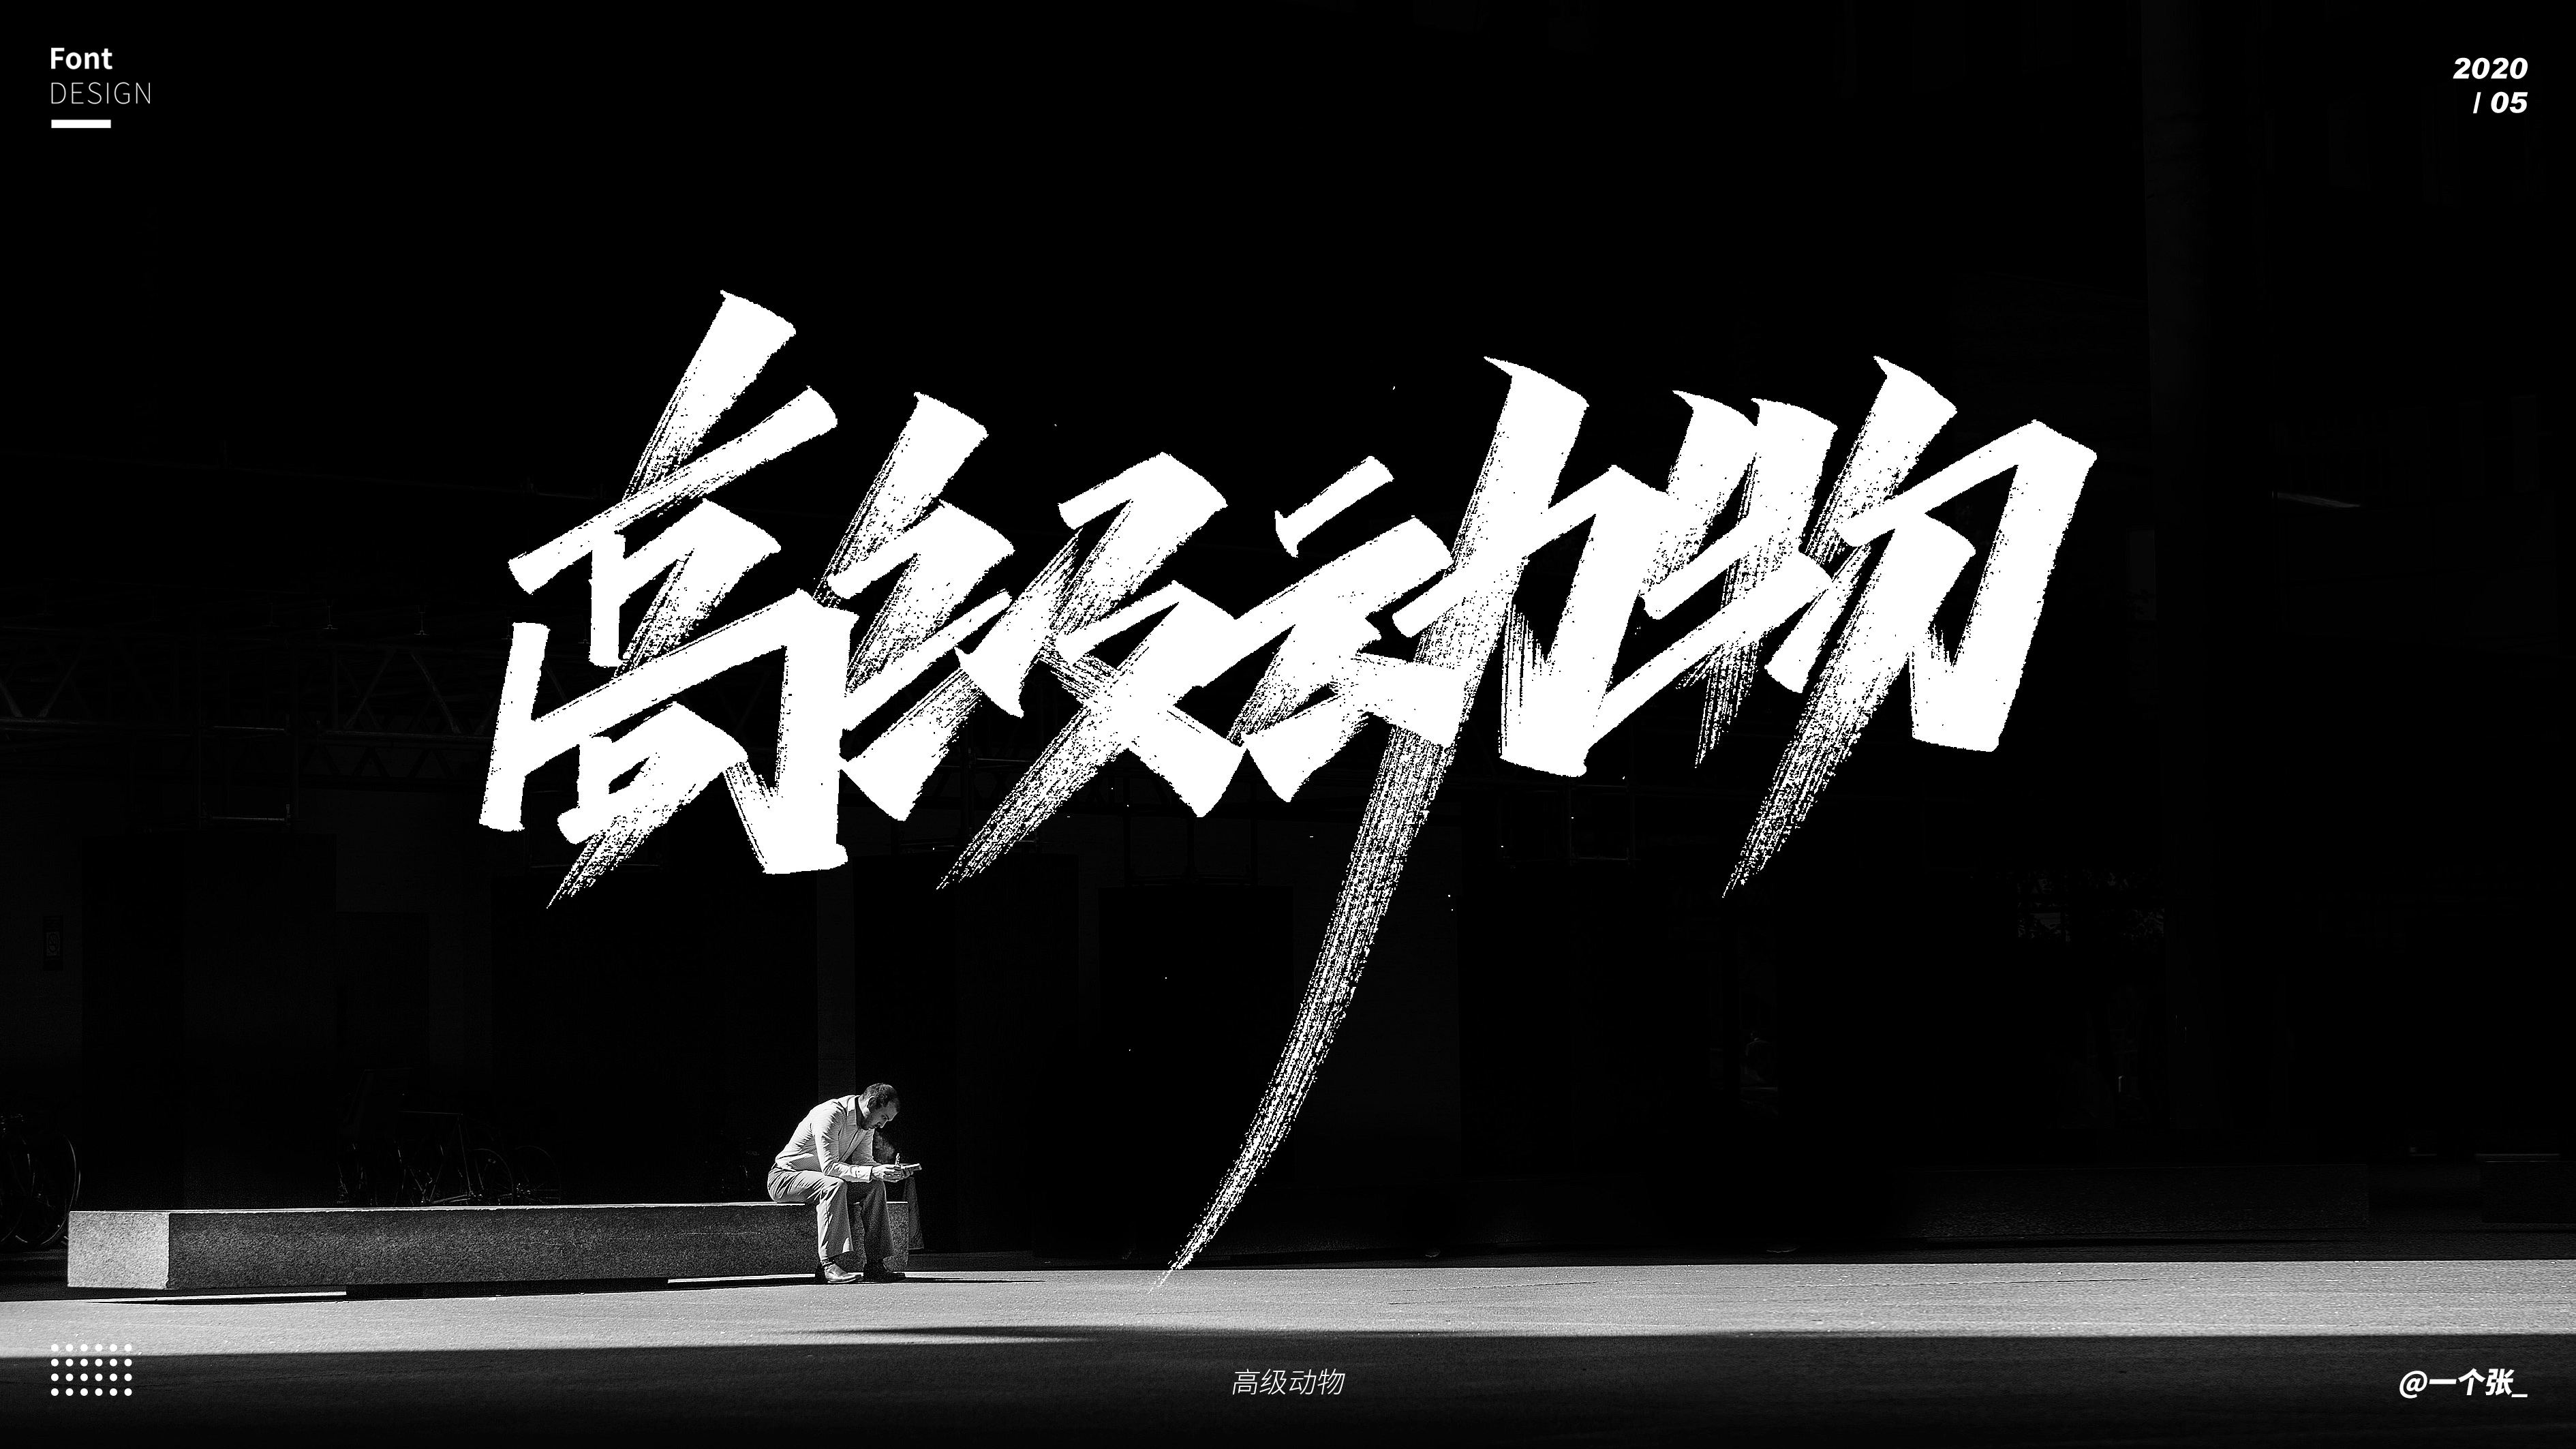 Interesting Chinese Creative Font Design-The inspiration for writing comes from life.